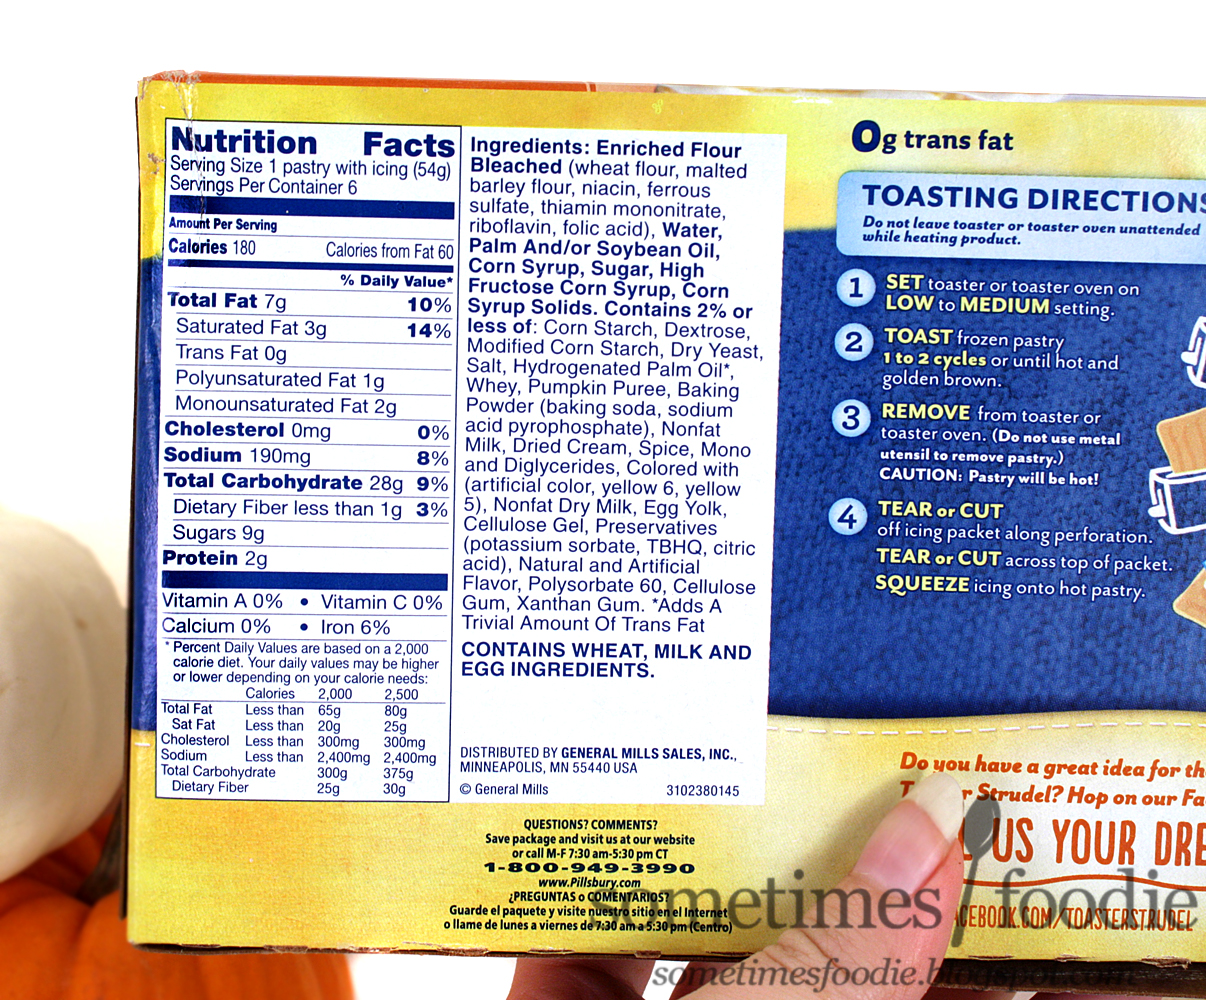 I'm going to skip over the packaging, since I already discussed it in my last Toaster Strudel post, and I'm going to get right down to the eating portion of ...